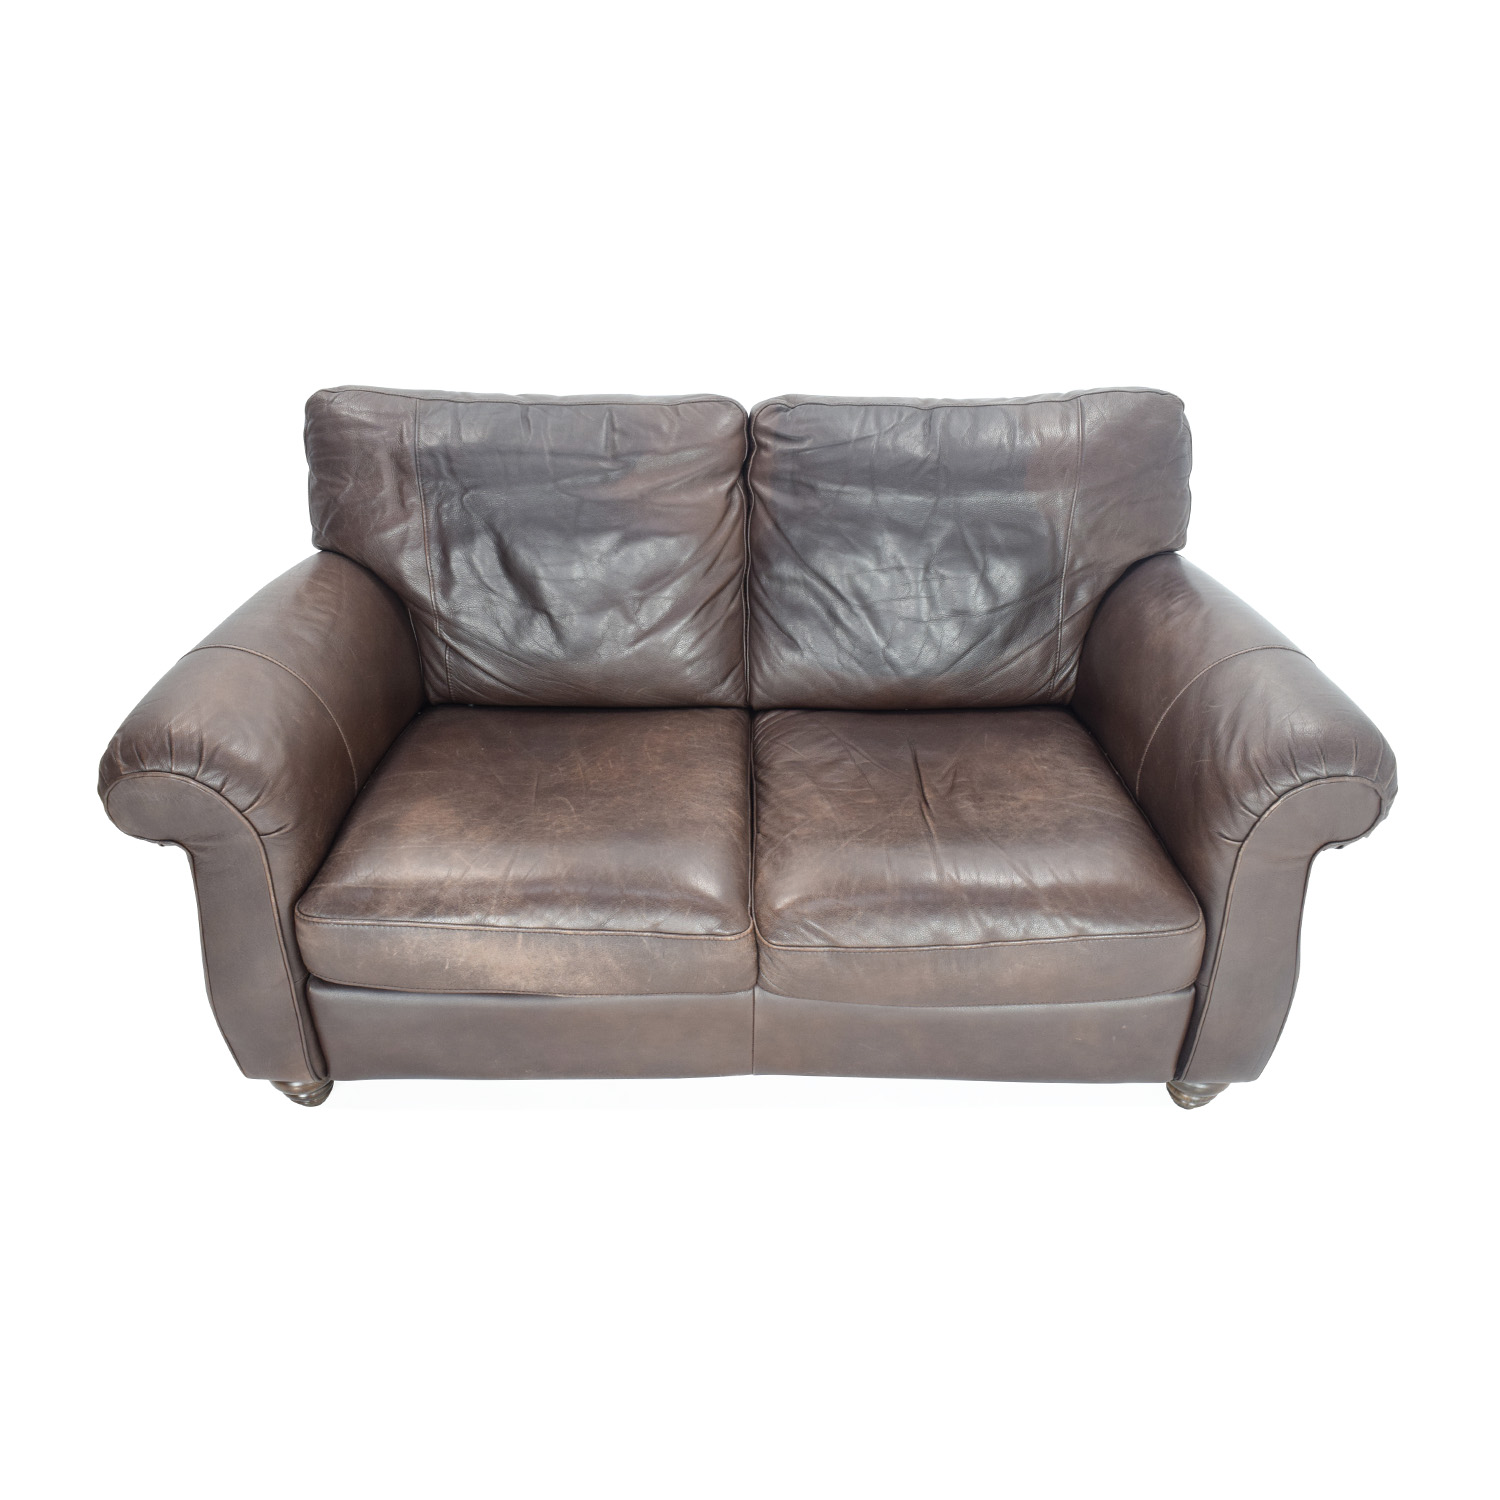 60 Off Unknown Brand Grey Loveseat Sofas